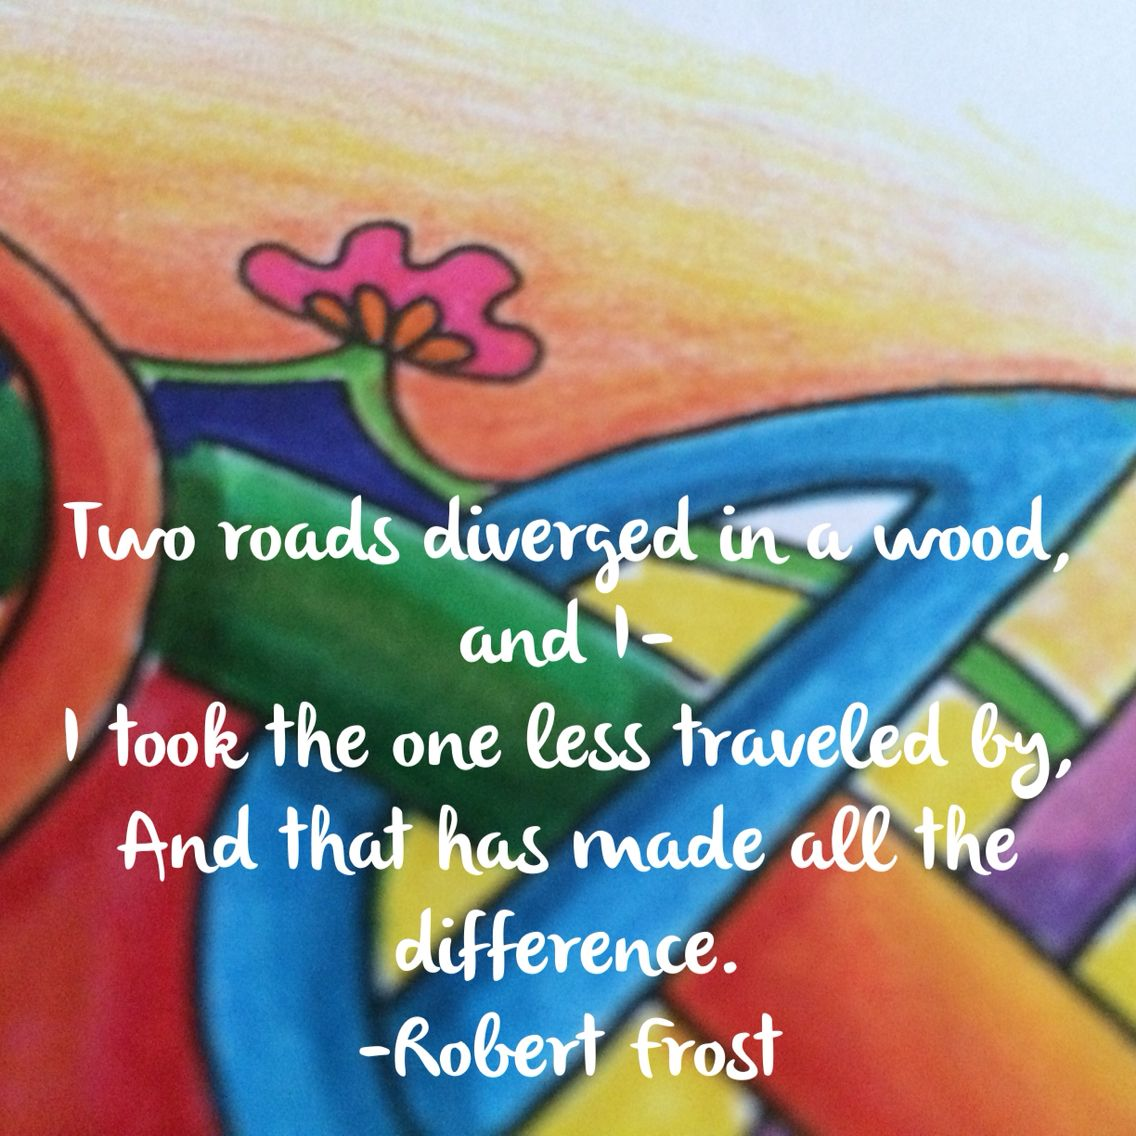 Image From Ancient Alchemy Coloring Book By Cher Kaufmann Quote Robert Frost